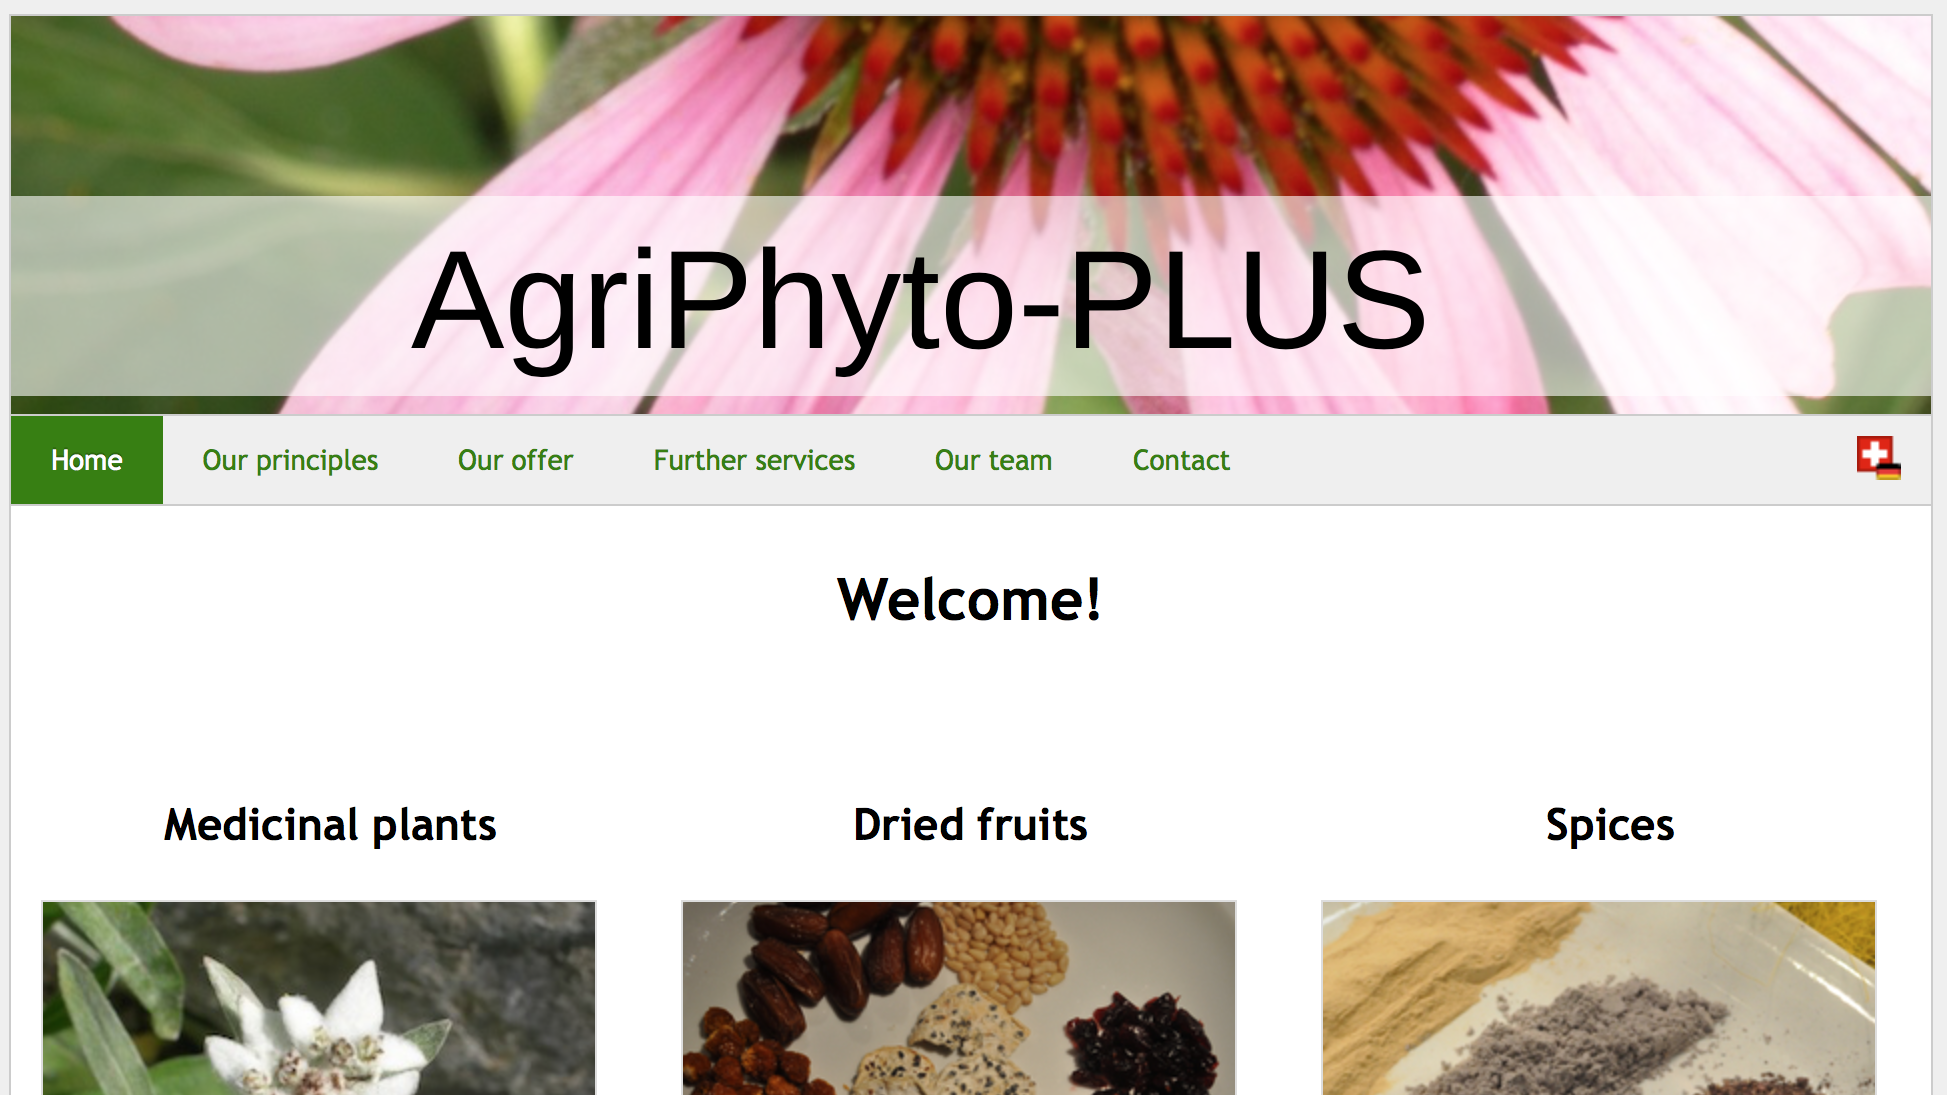 agriphyto-plus.ch